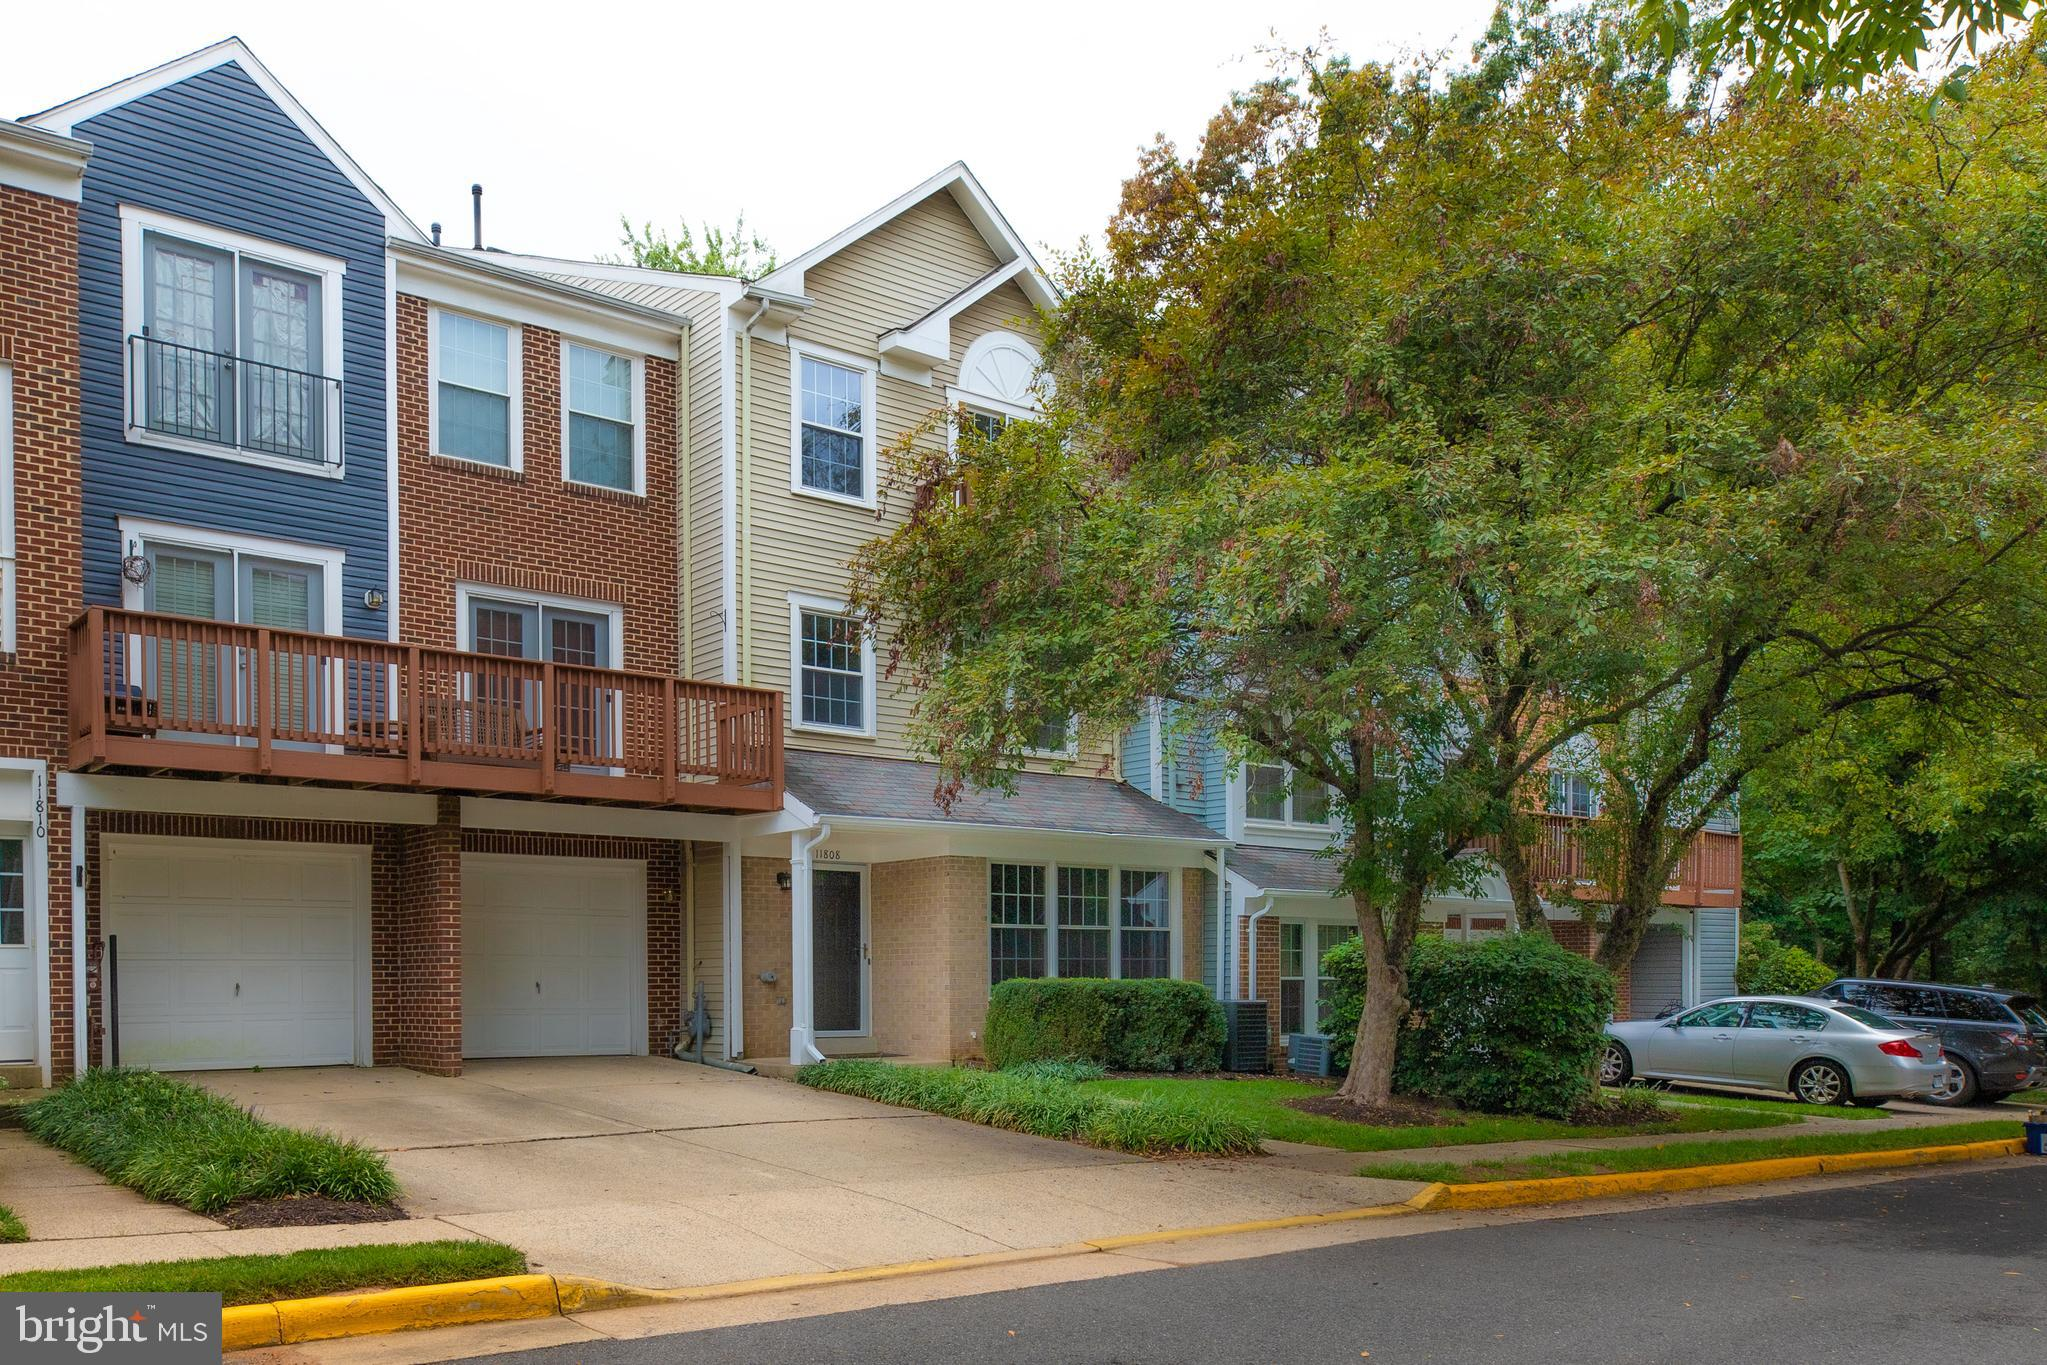 Welcome to this Carriage Park Community. Three Level Townhome - Condo with Garage in the heart of Fa